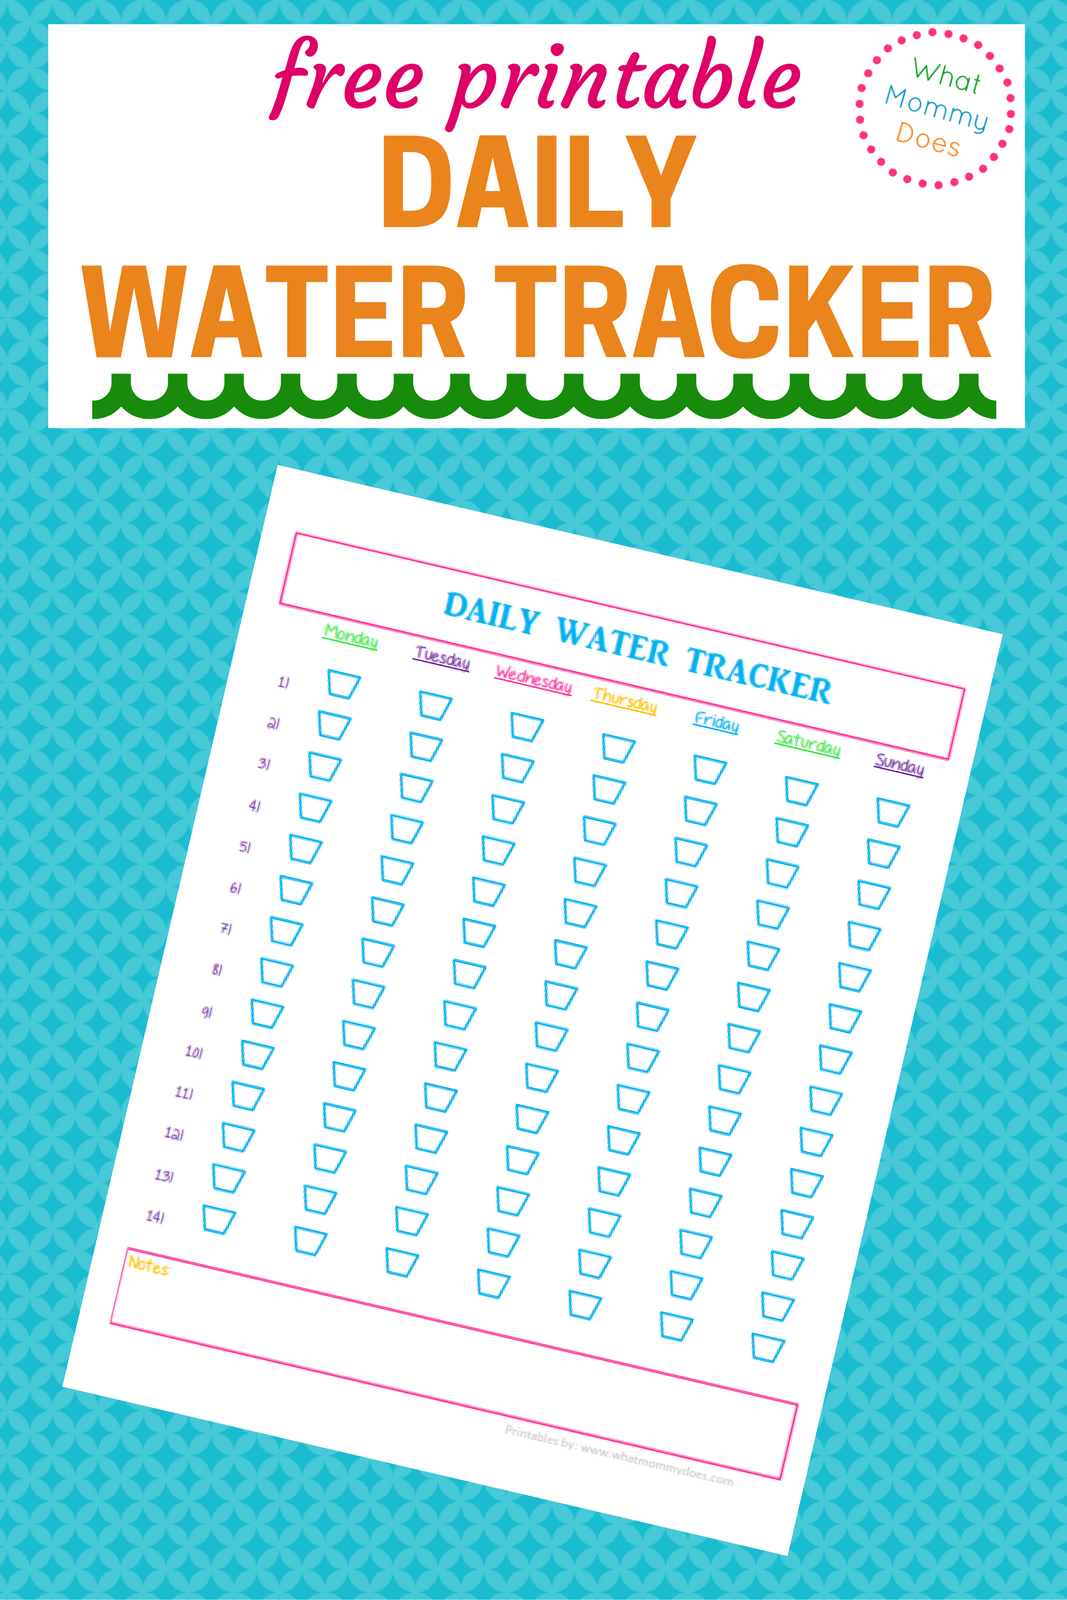 Free Printable Daily Water Tracker